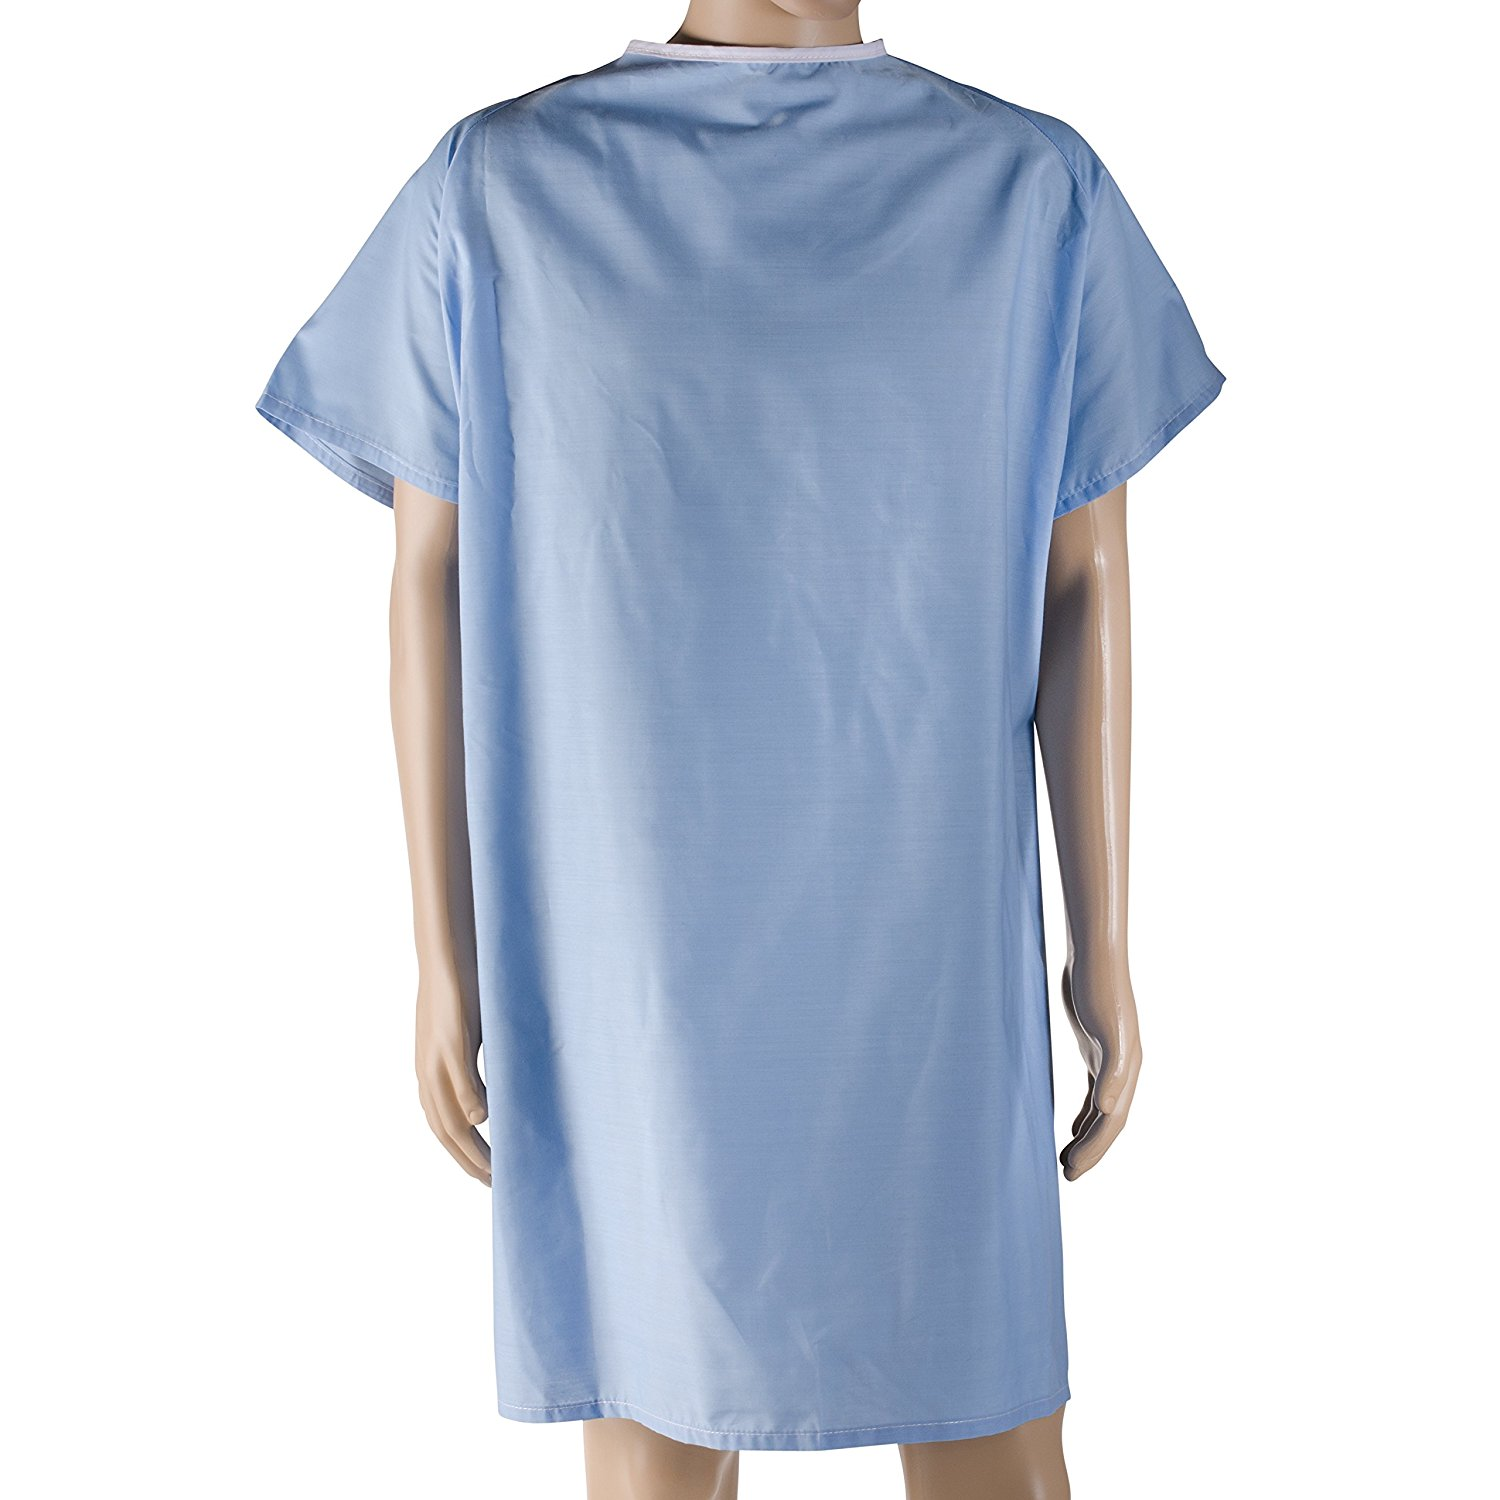 Cotton And Polyester Hospital Patient Gowns High Quality - Buy ...